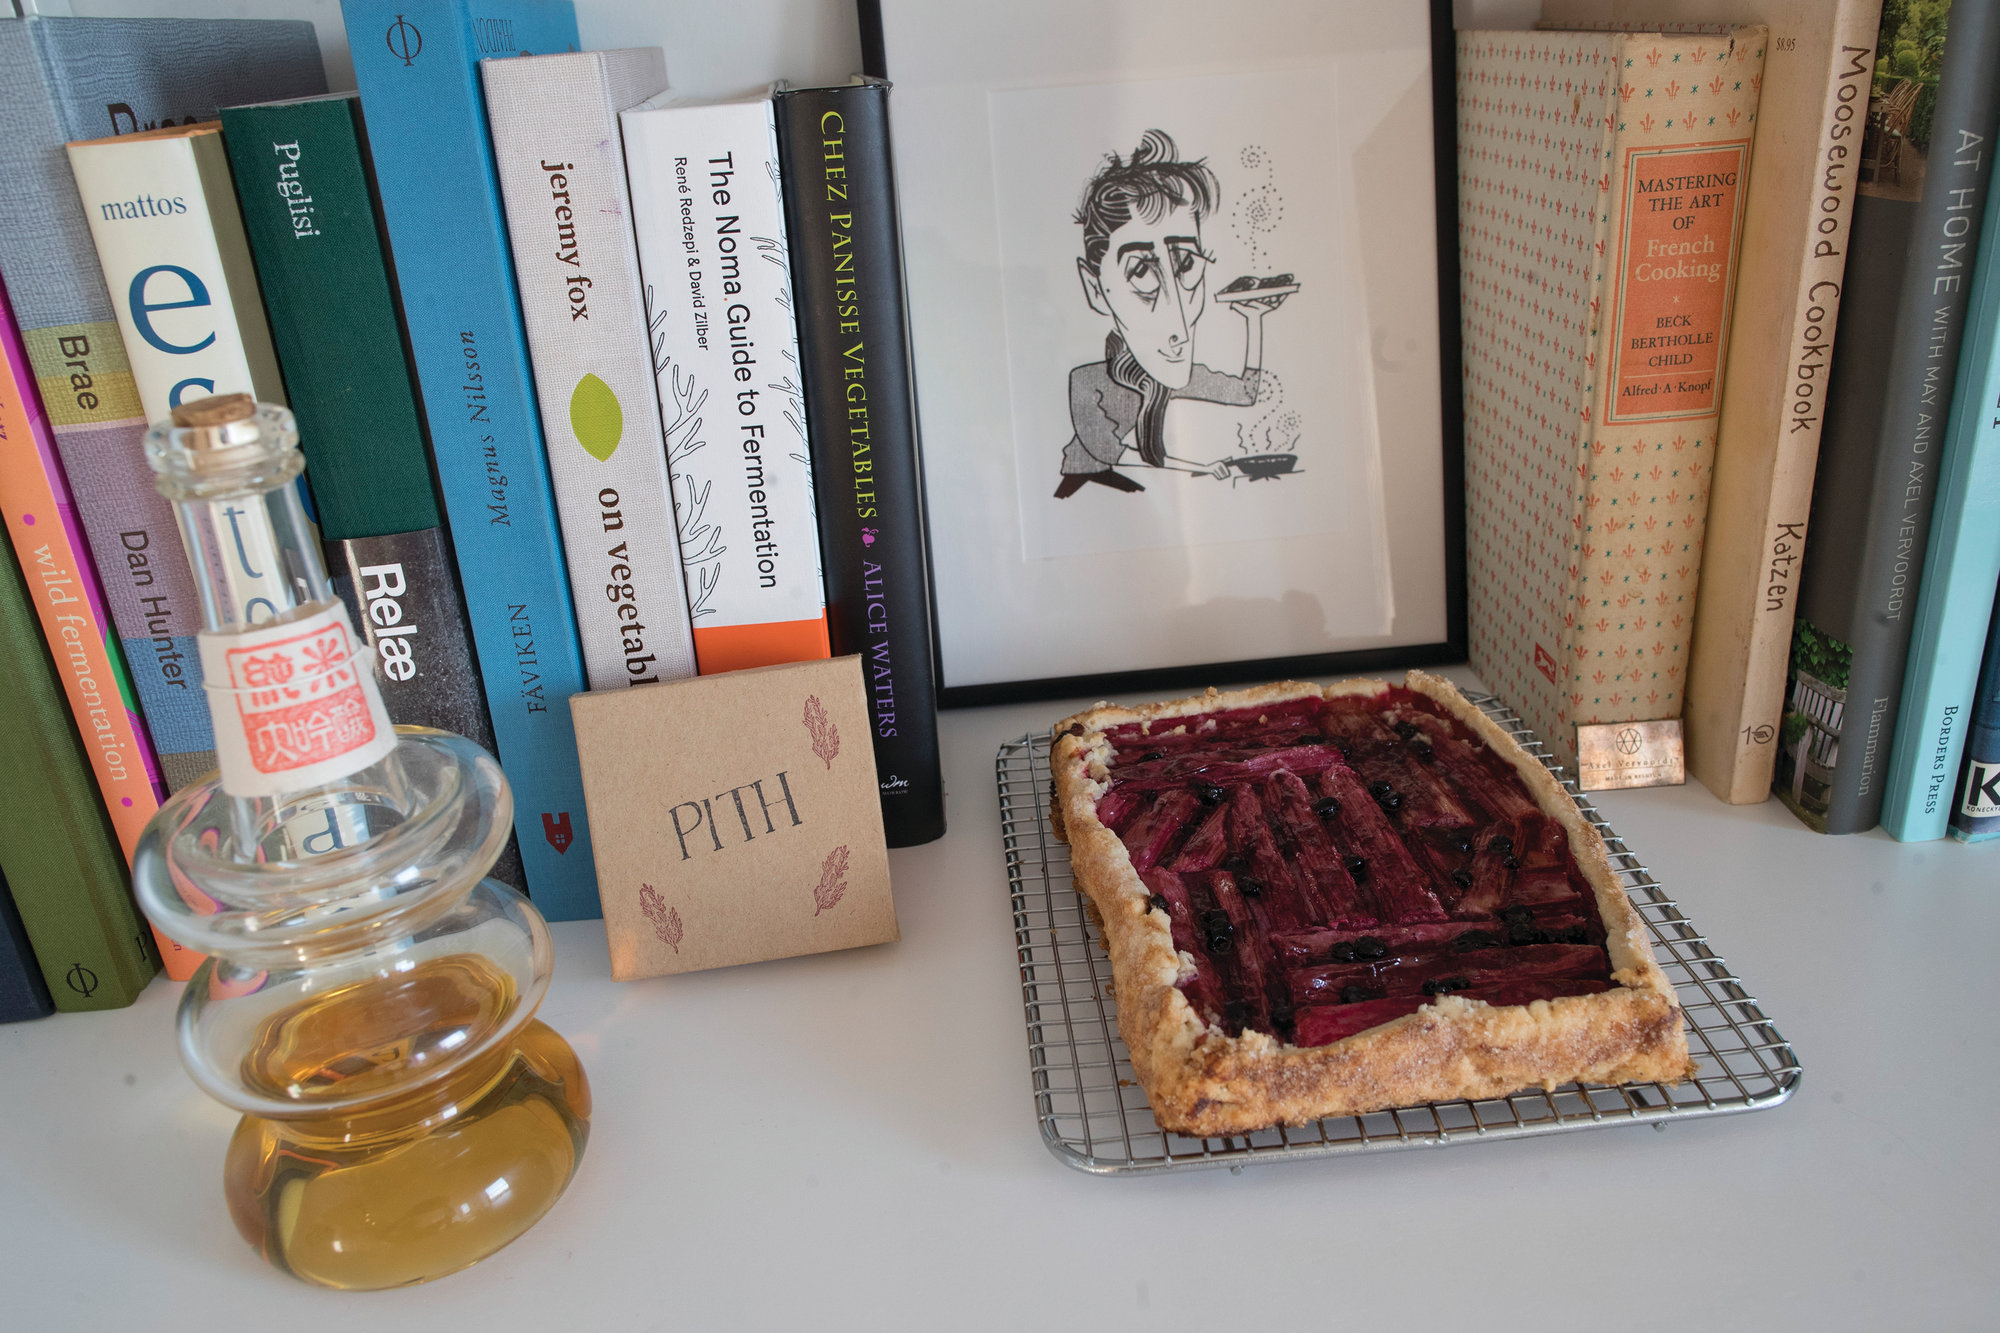 THE ASSOCIATED PRESS  A rhubarb tart is displayed with a caricature of Jonah Reider and his cookbooks in his New York apartment. In the competitive food world, Reider is a millennial whose cooking is opening doors to adventures far beyond food.